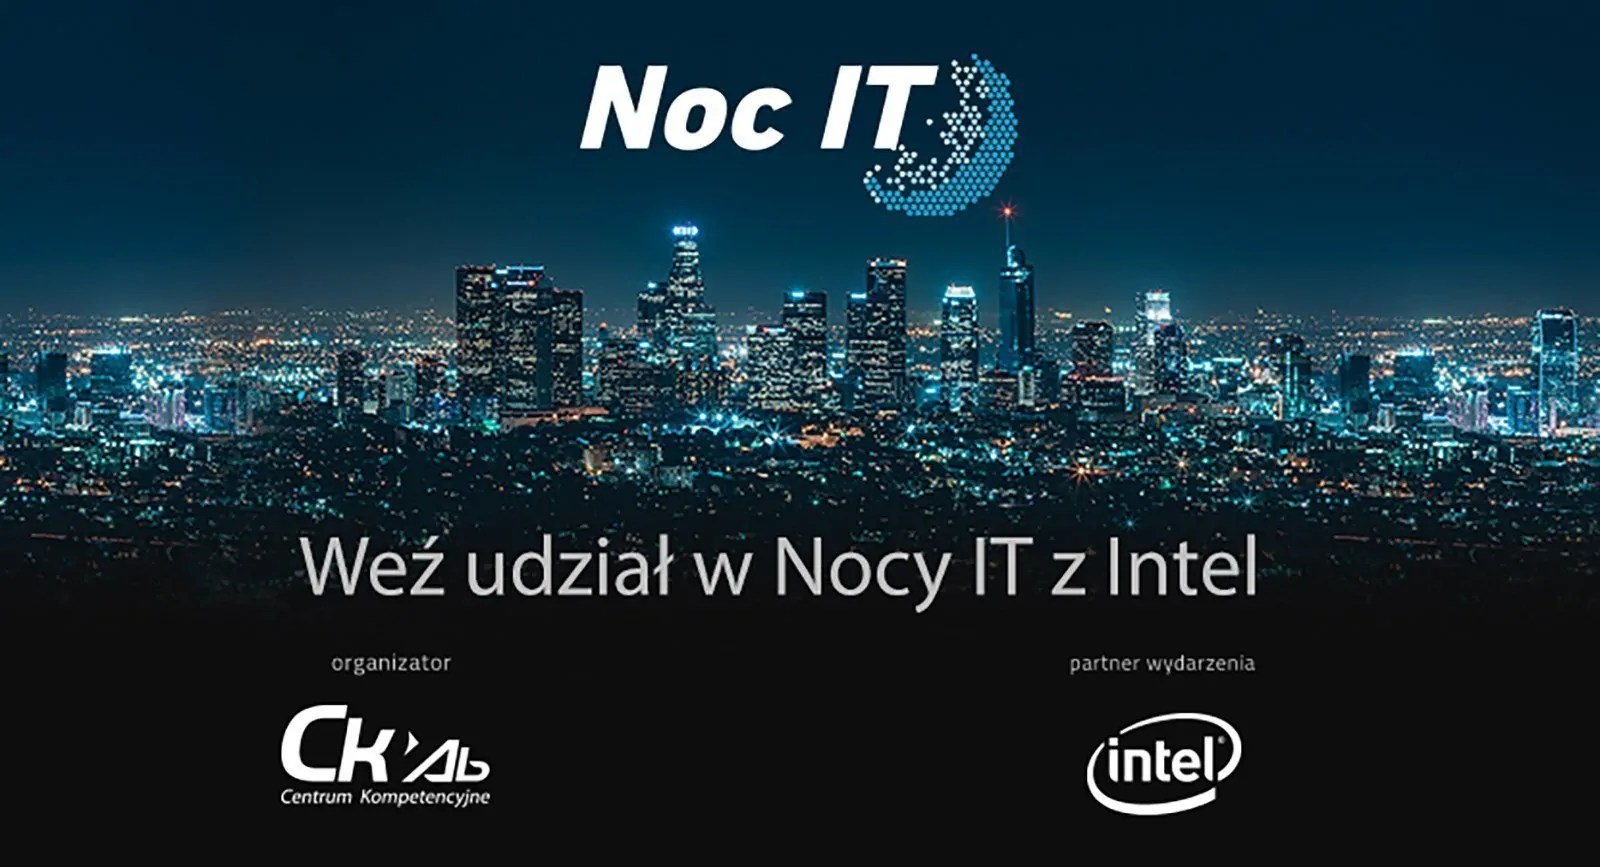 Noc IT Intel